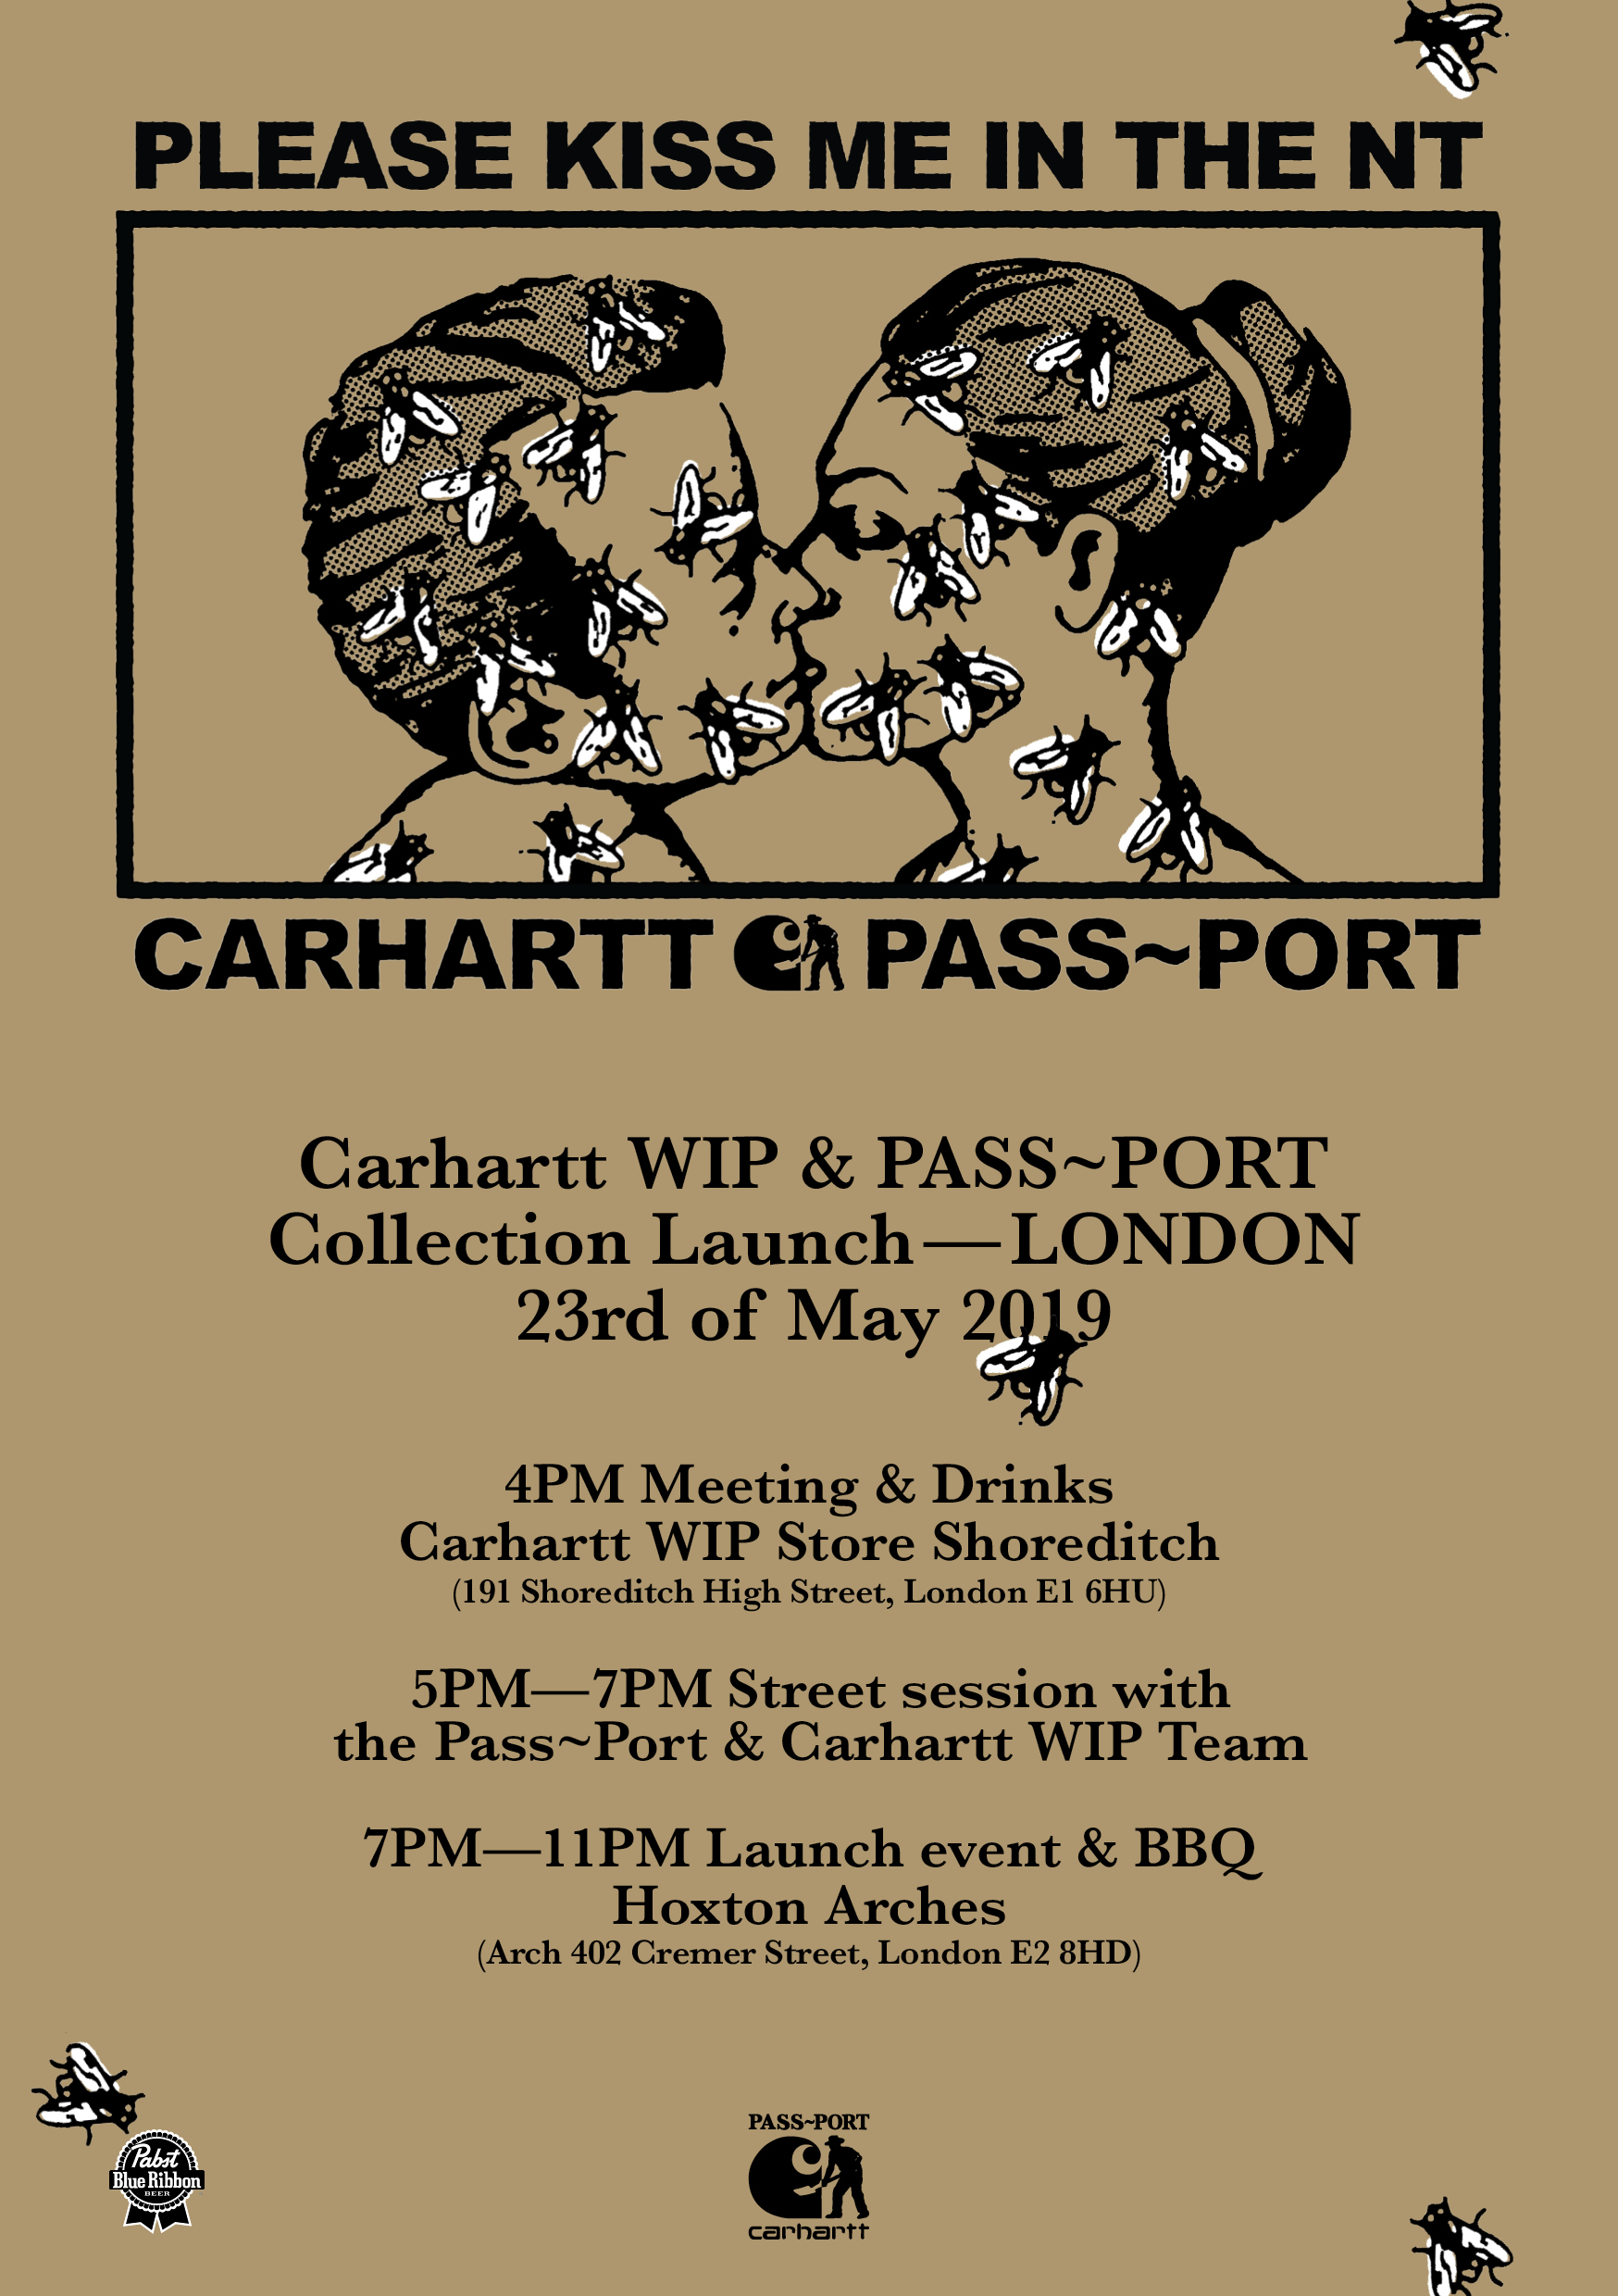 CarharttWIPxPassport_Digital_Flyer_London_NEW.jpg